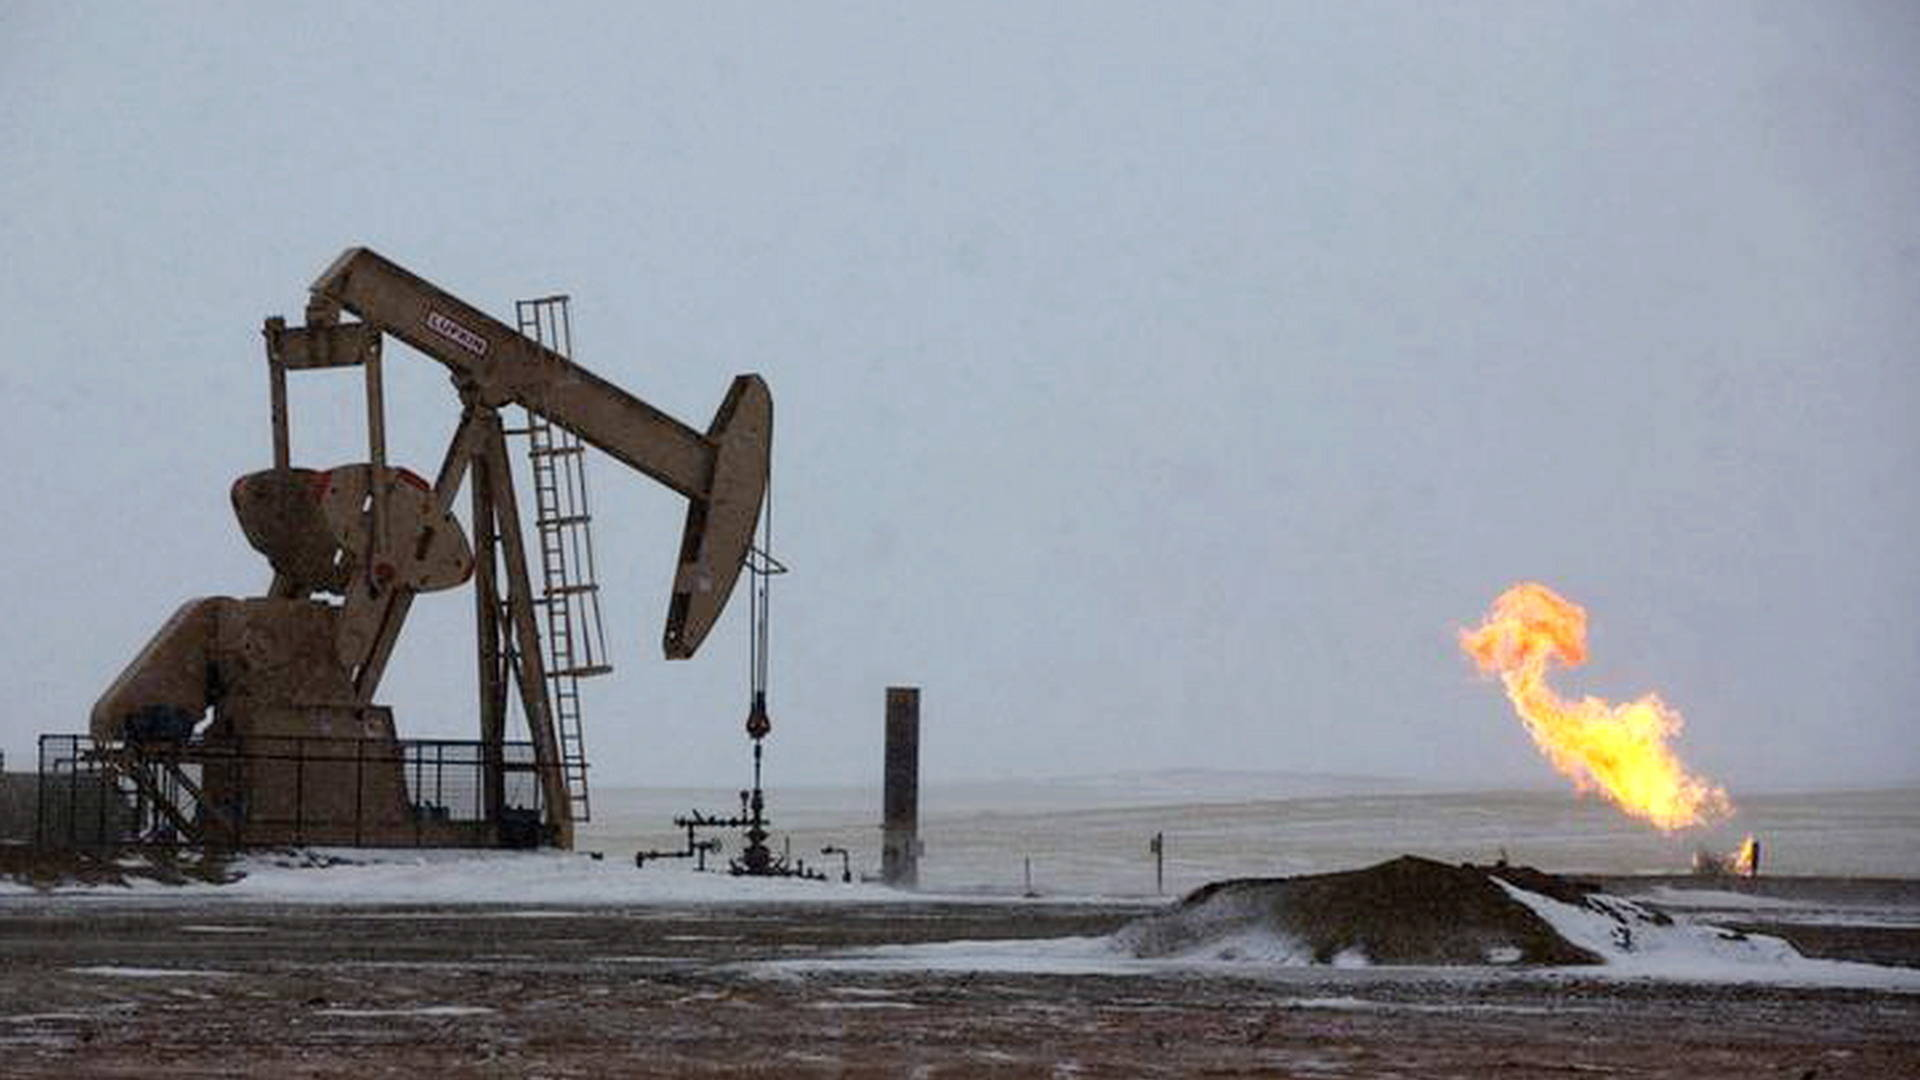 Report: Canada's $3.3B in Oil & Gas Subsidies Undermines